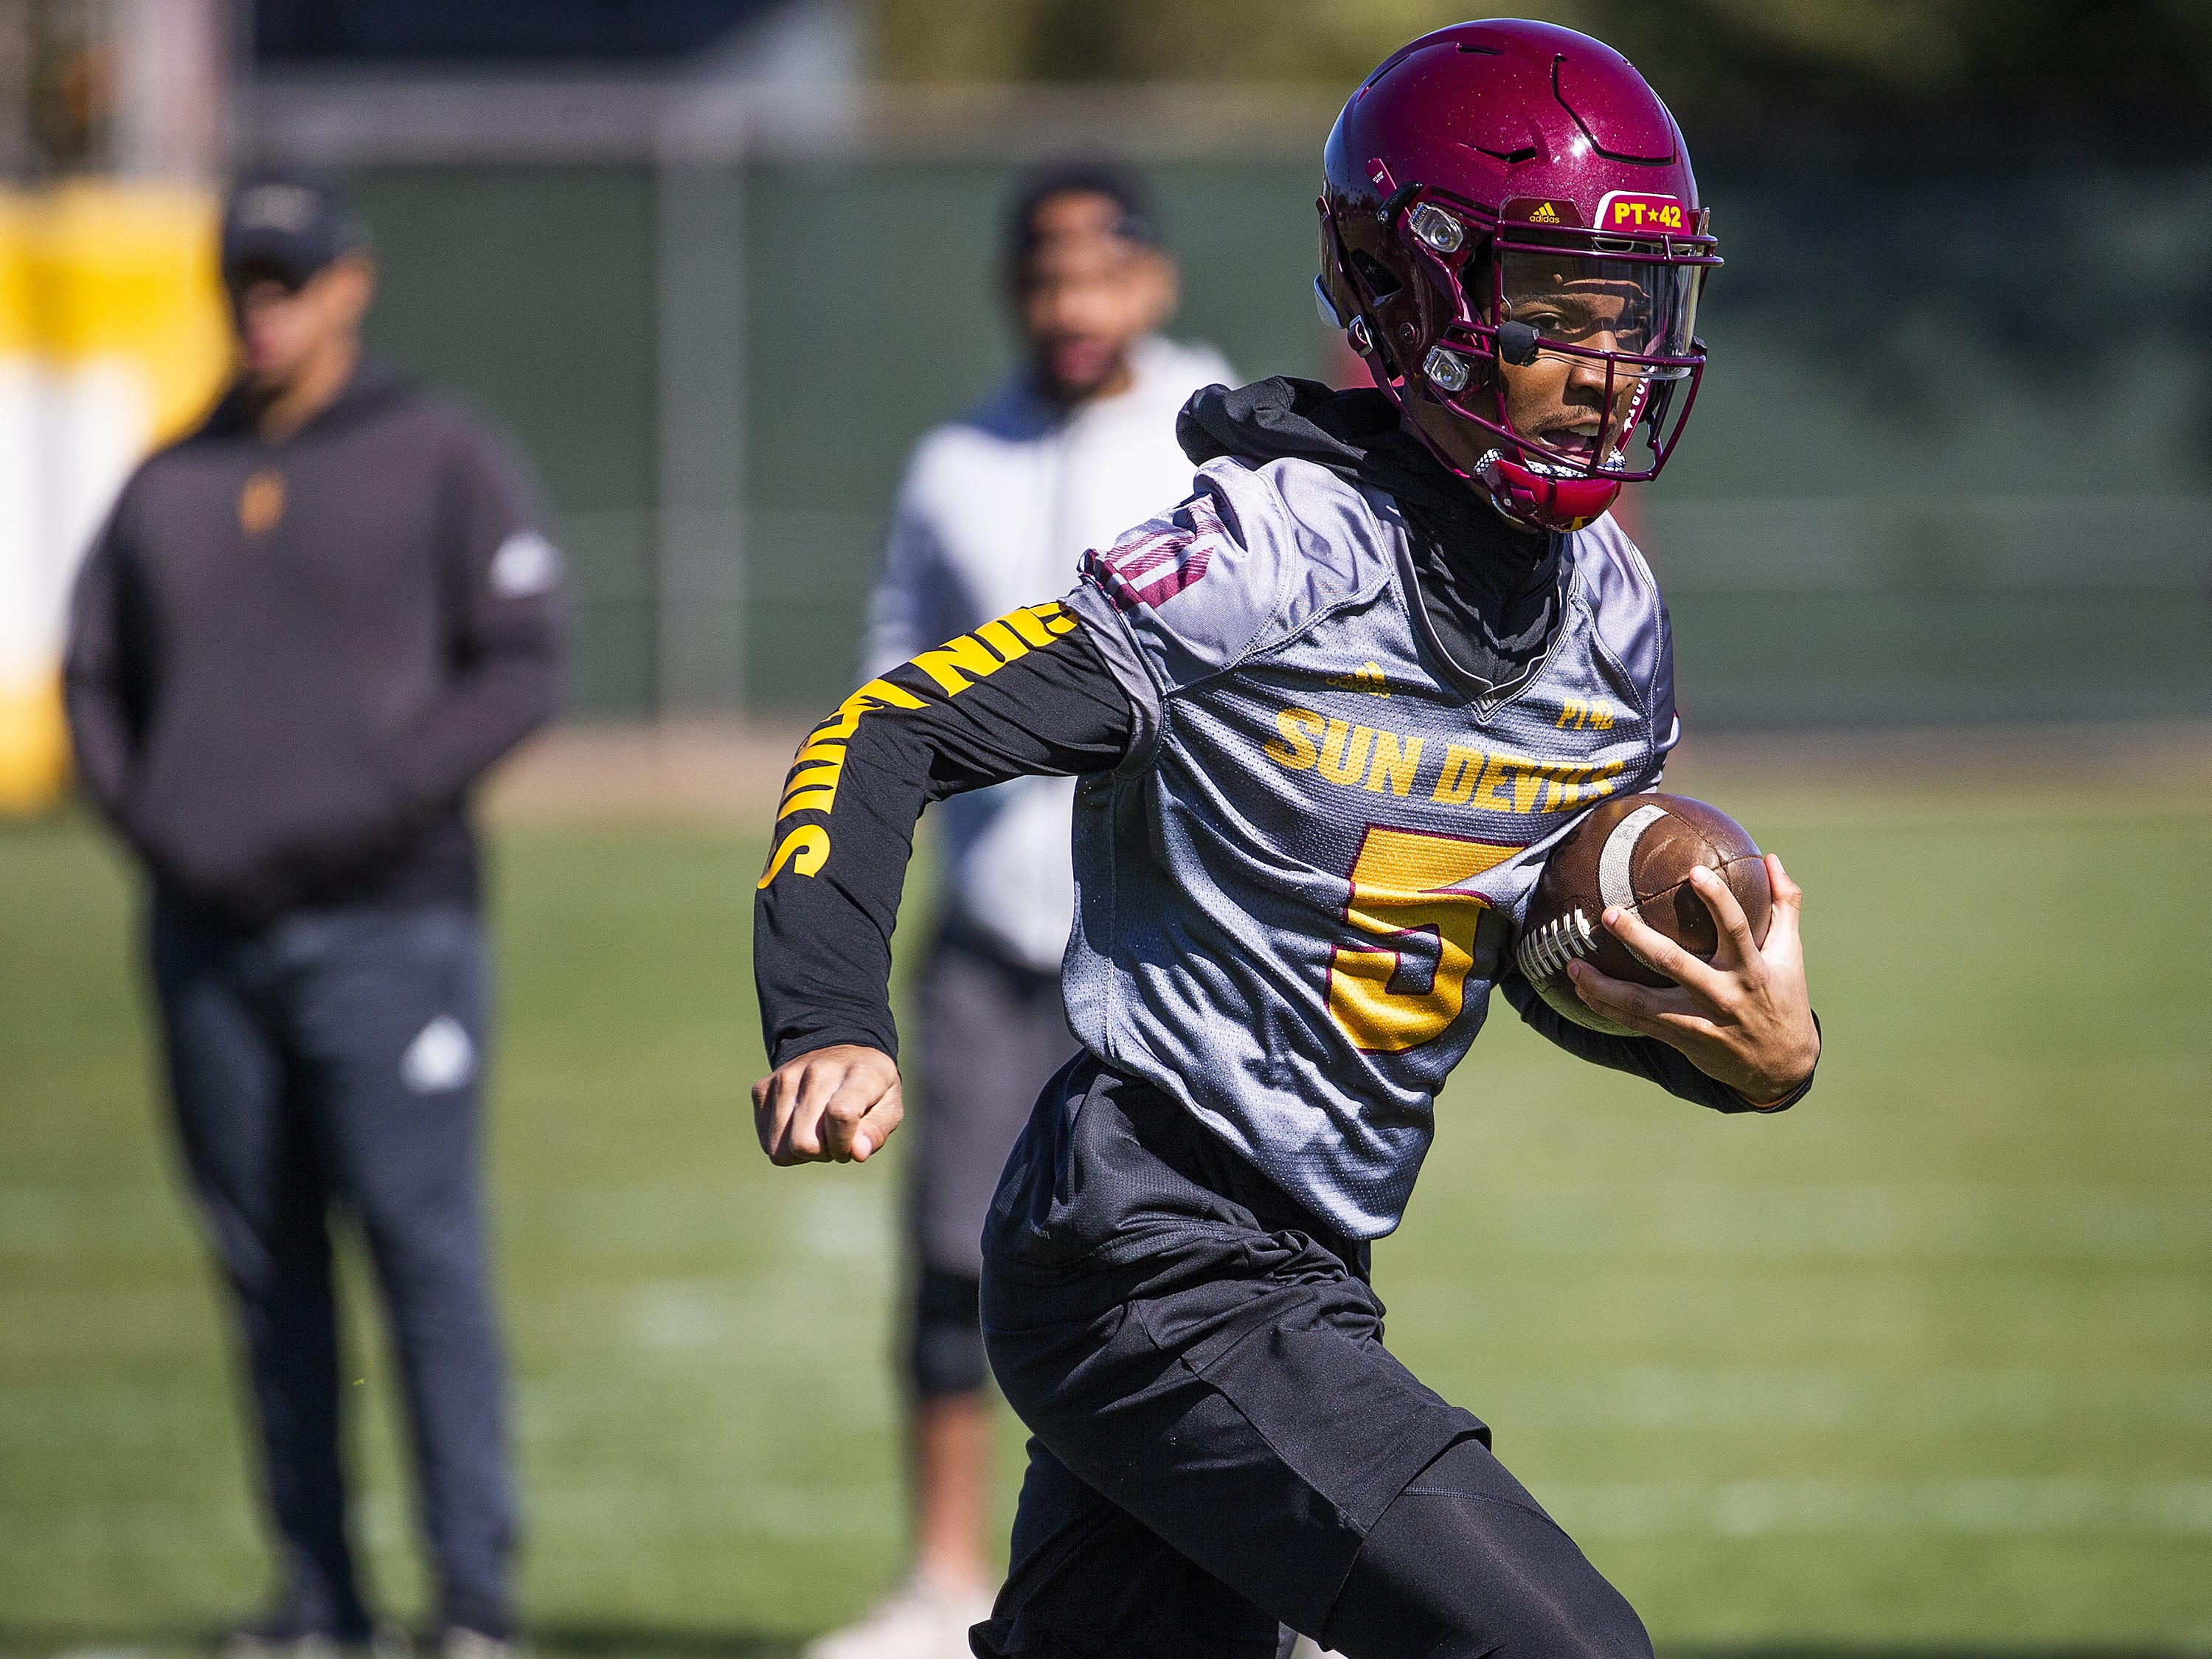 The Arizona State University football team practiced in Tempe, Tuesday, February 26, 2019.   Quarterback Jayden Daniels runs with the ball.